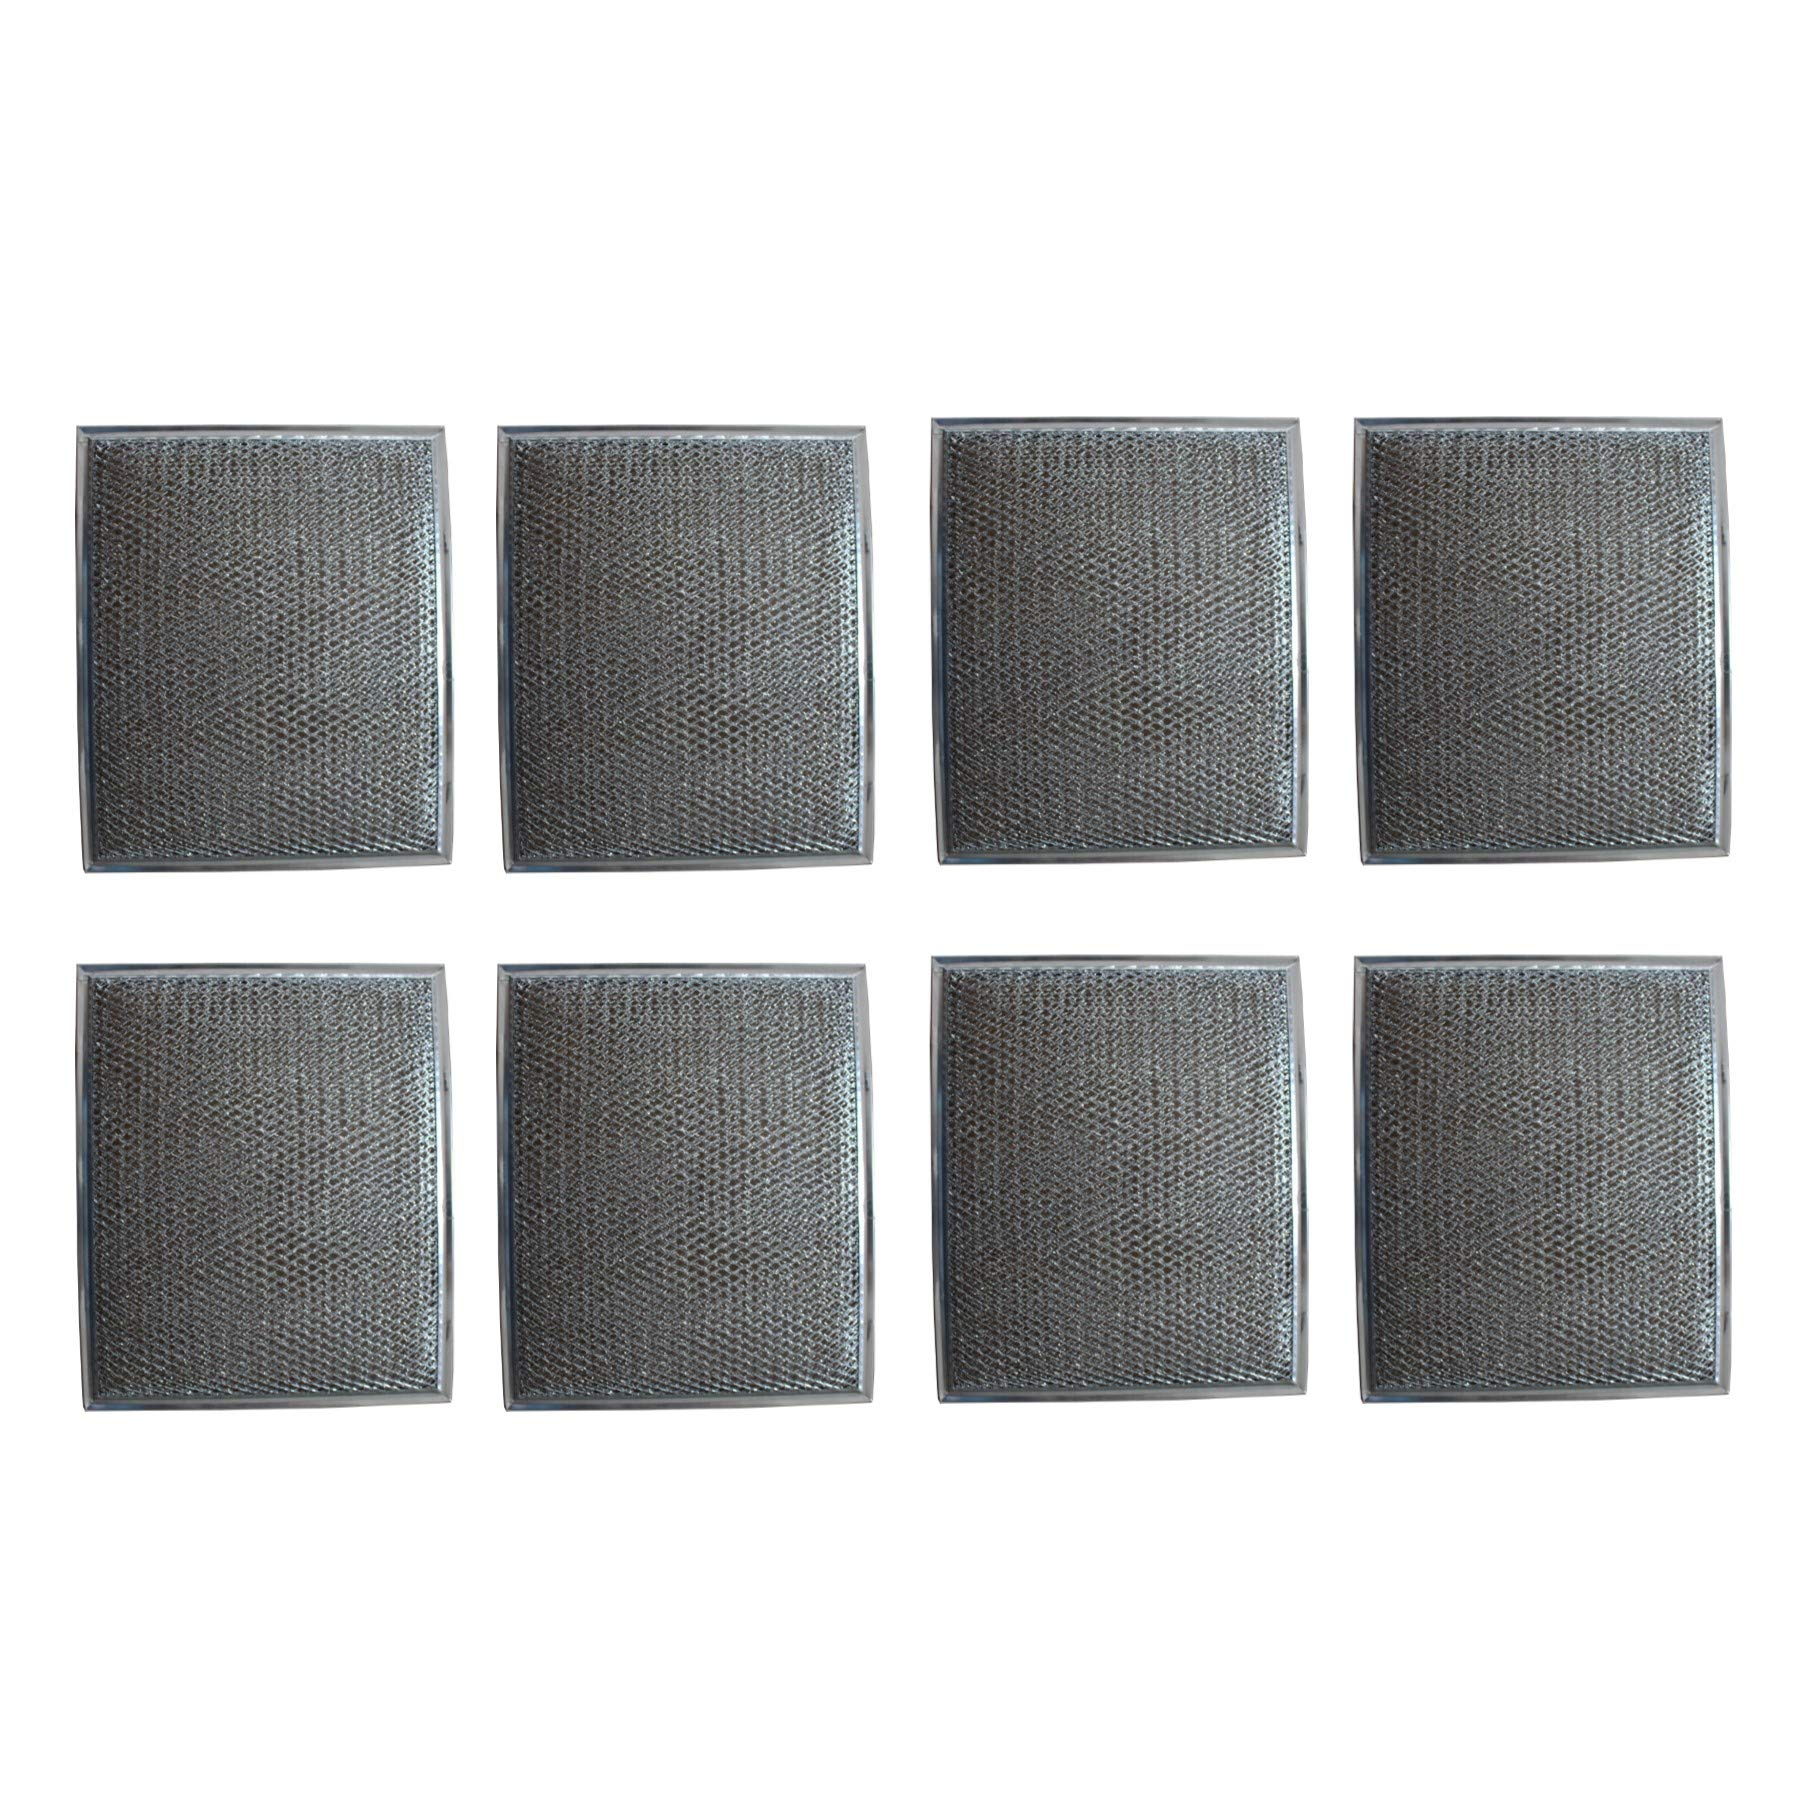 Duraflow Filtration Replacement Aluminum Filter for Many Broan / Nutone Models (8 Pack)